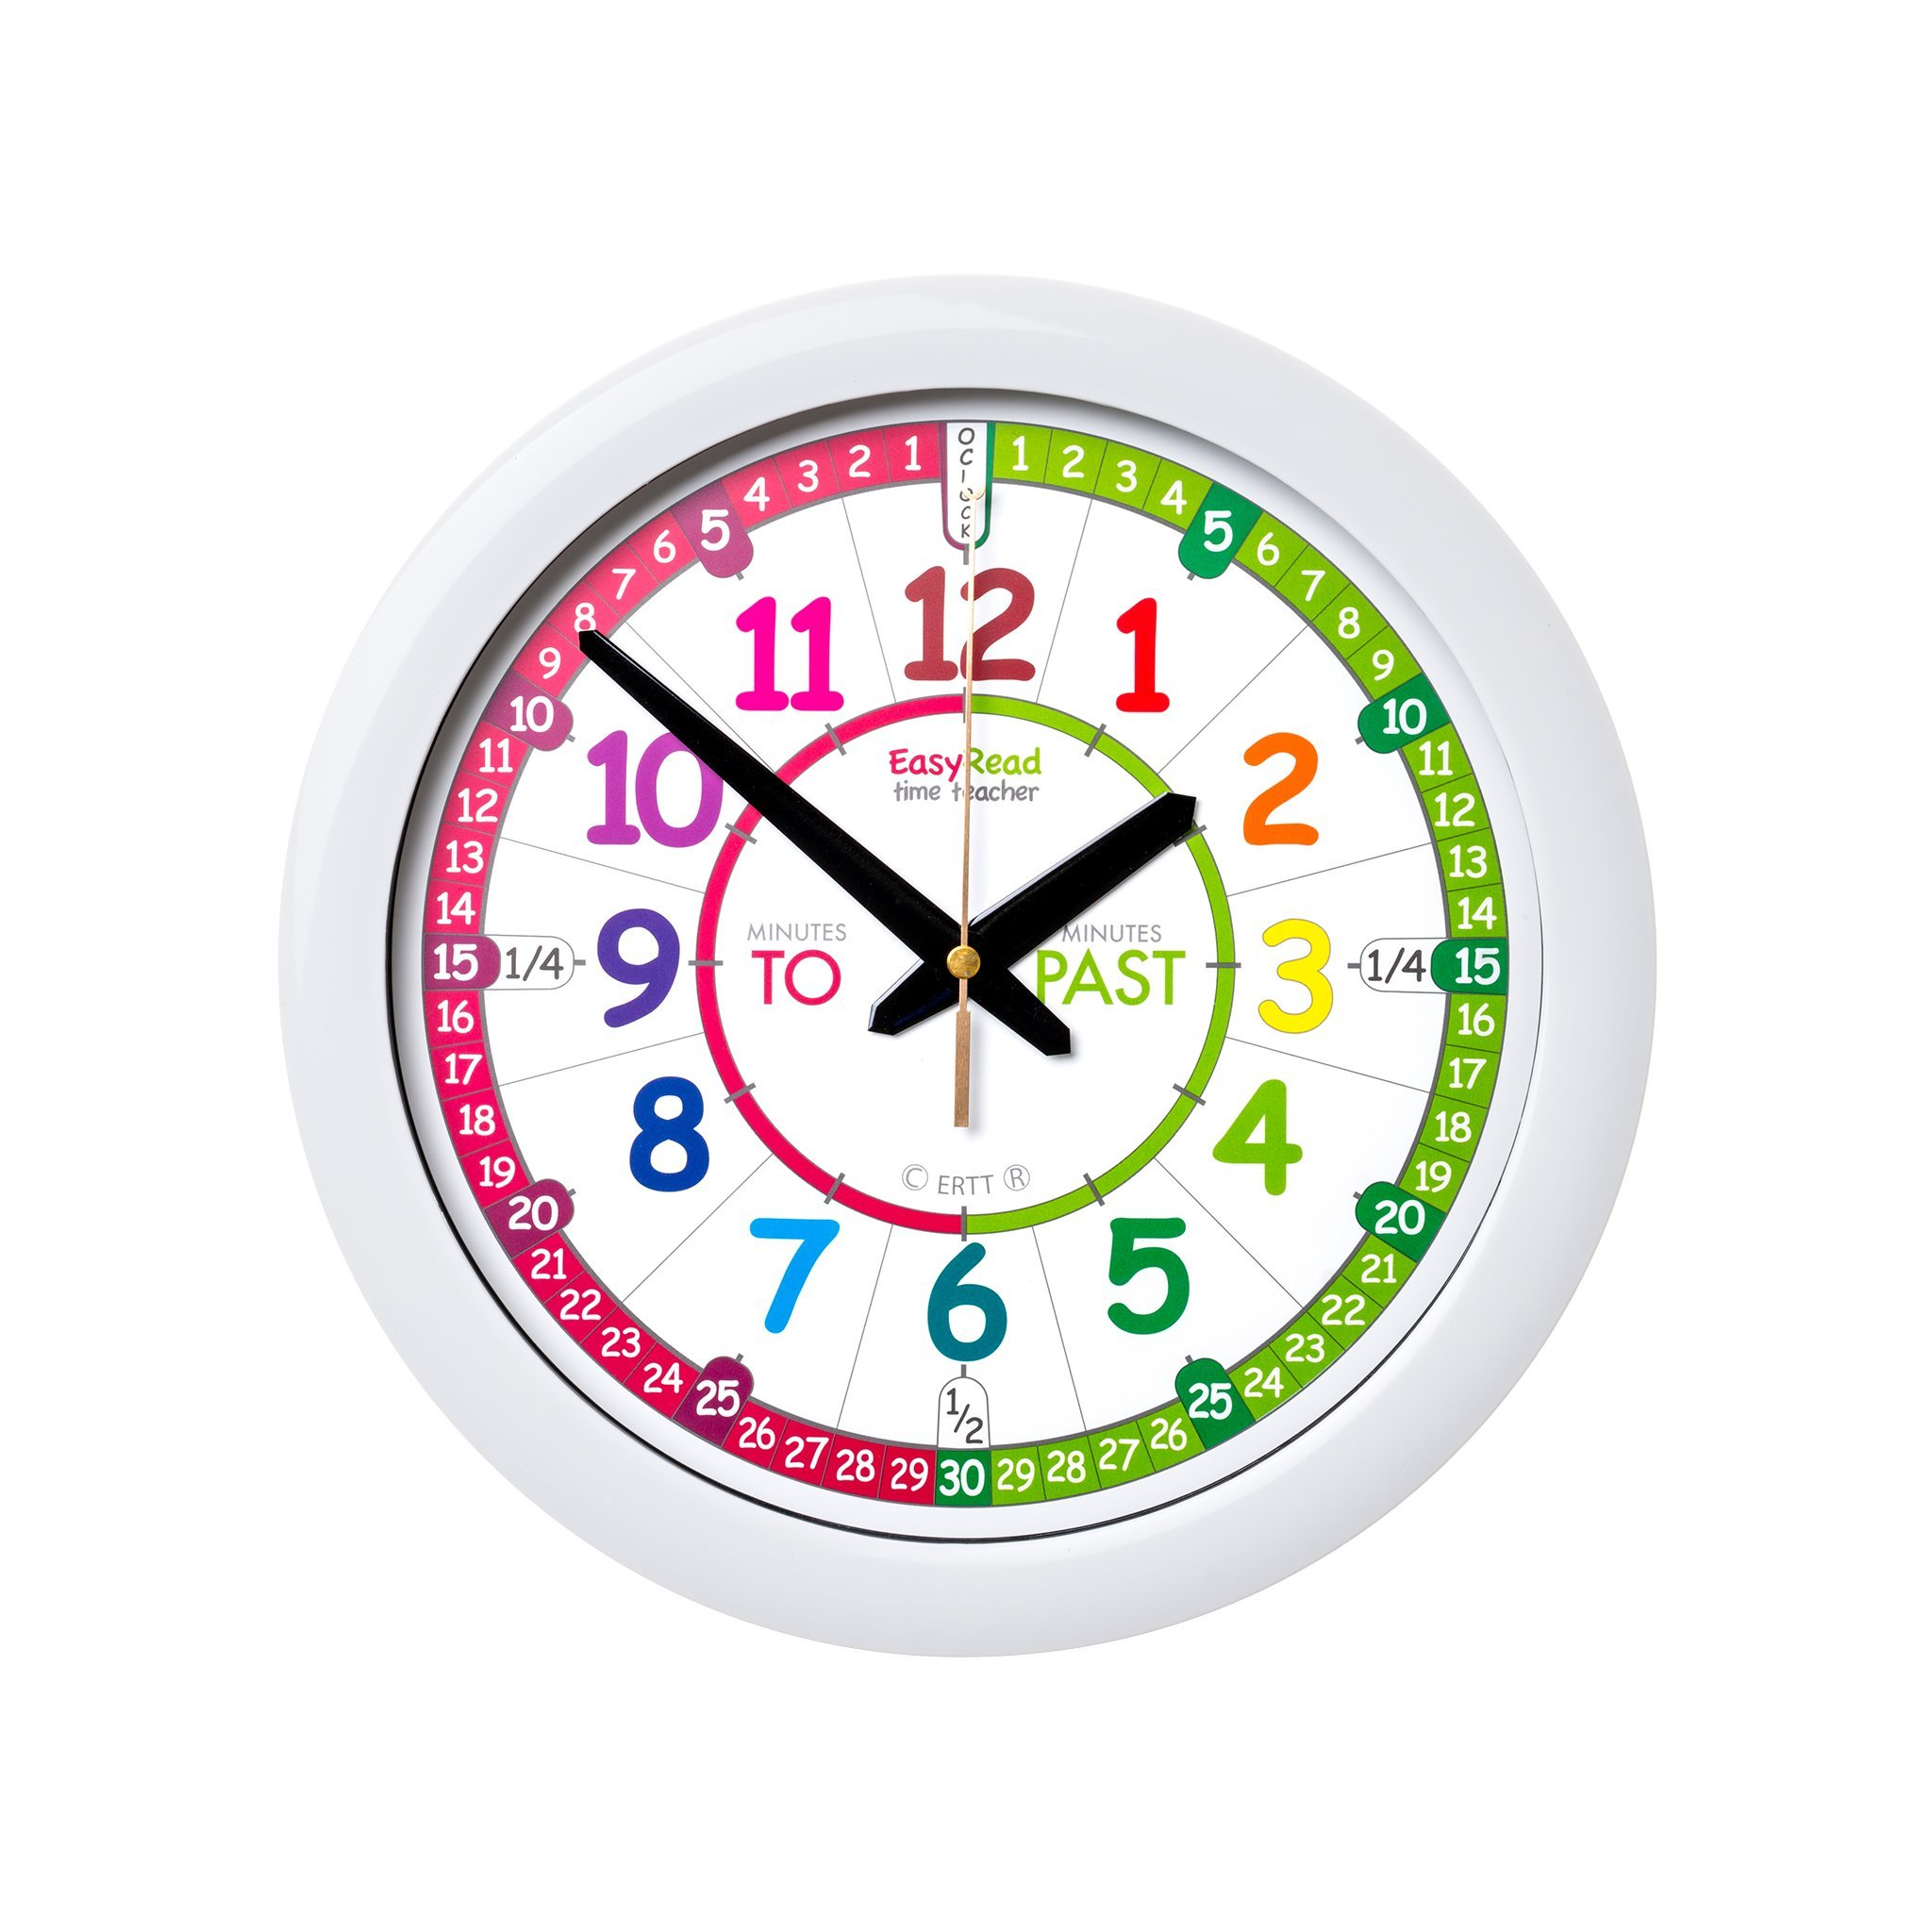 EasyRead Time Teacher Children's Wall Clock with simple 3 Step Teaching System. 12'' dia, learn to tell the time, ages 5-12.